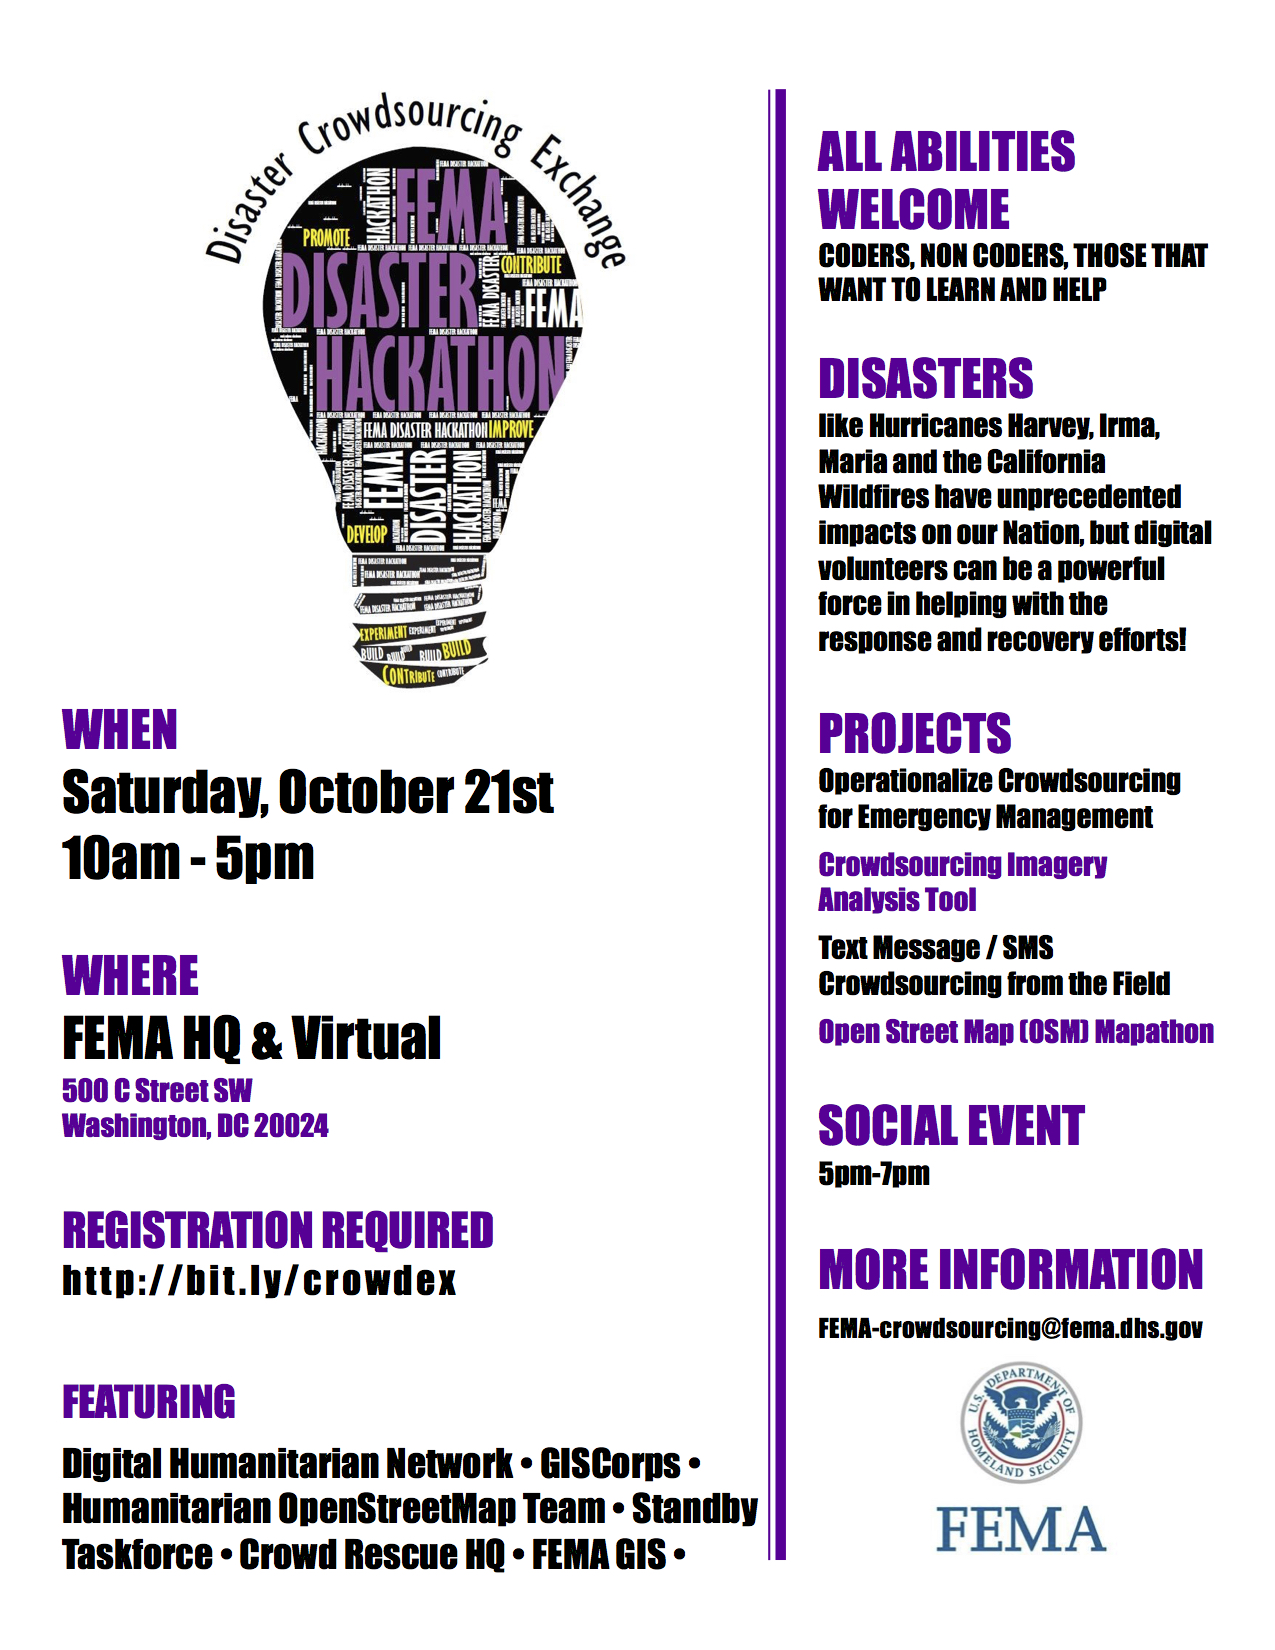 FEMA Disaster Crowdsourcing Exchange image